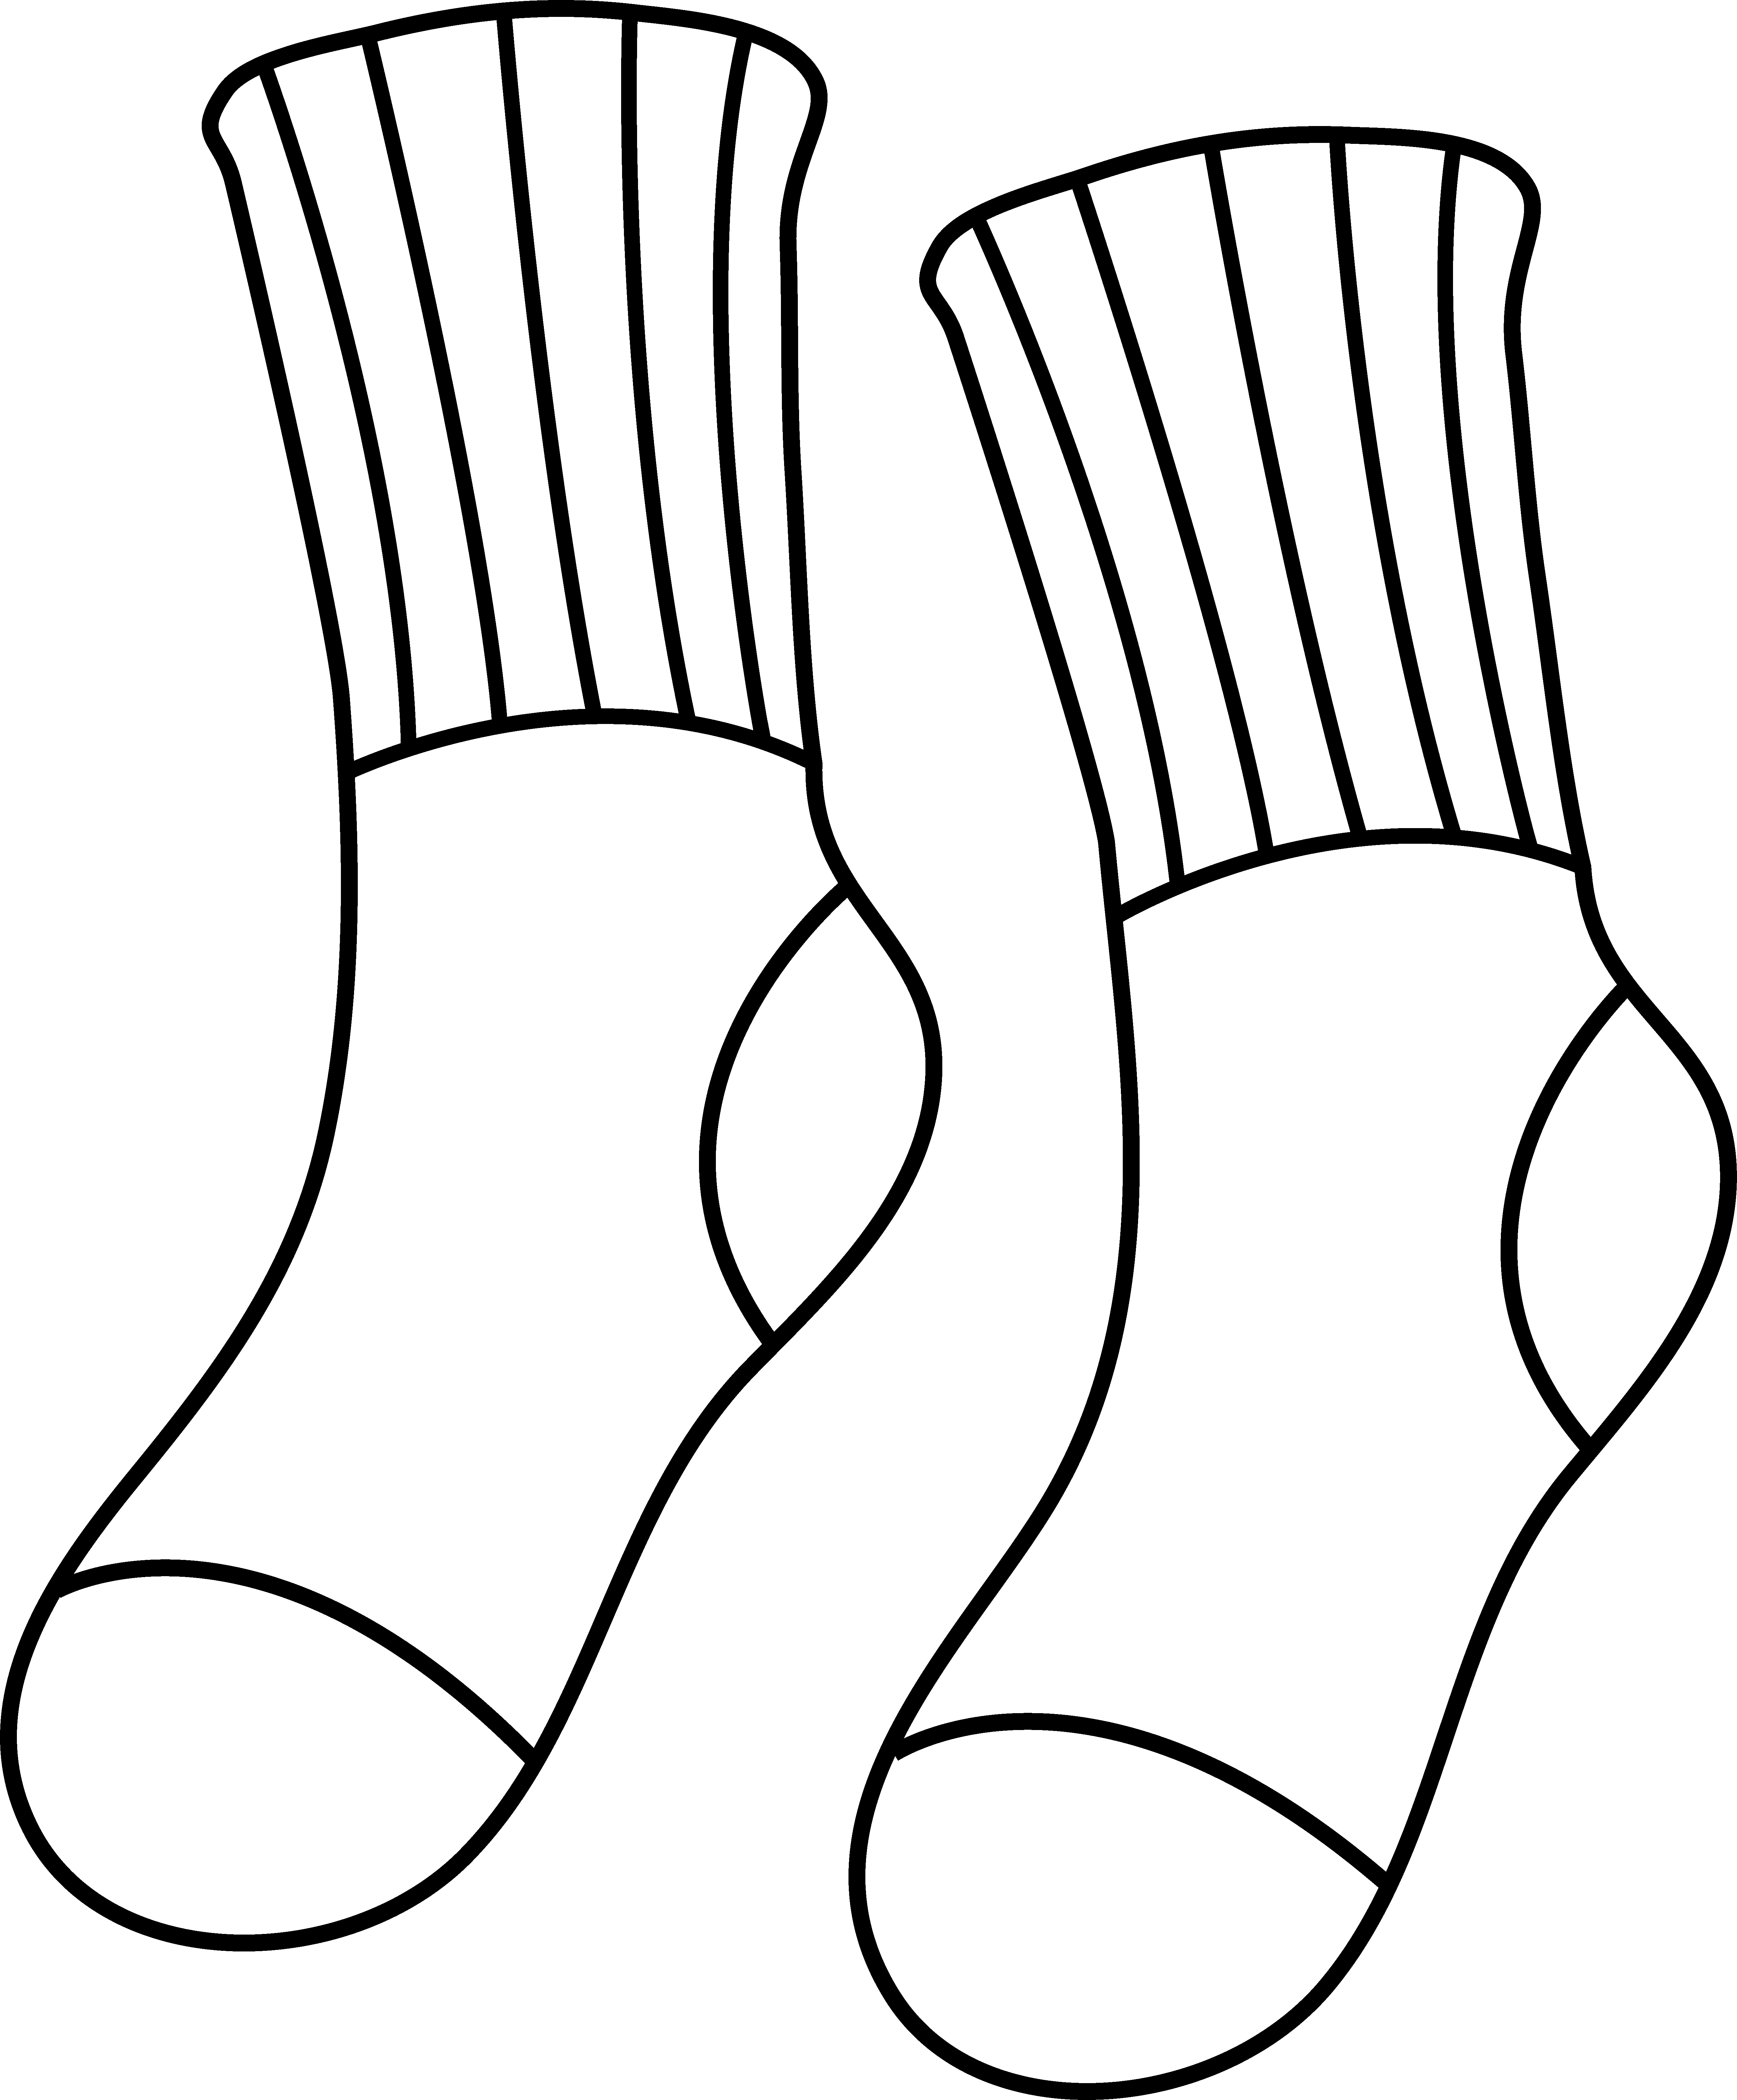 Coloring Page Sock Coloring Picture Sock Free Coloring Sheets To Print And Download Im Coloring Pages Free Printable Coloring Pages Coloring Pages For Kids